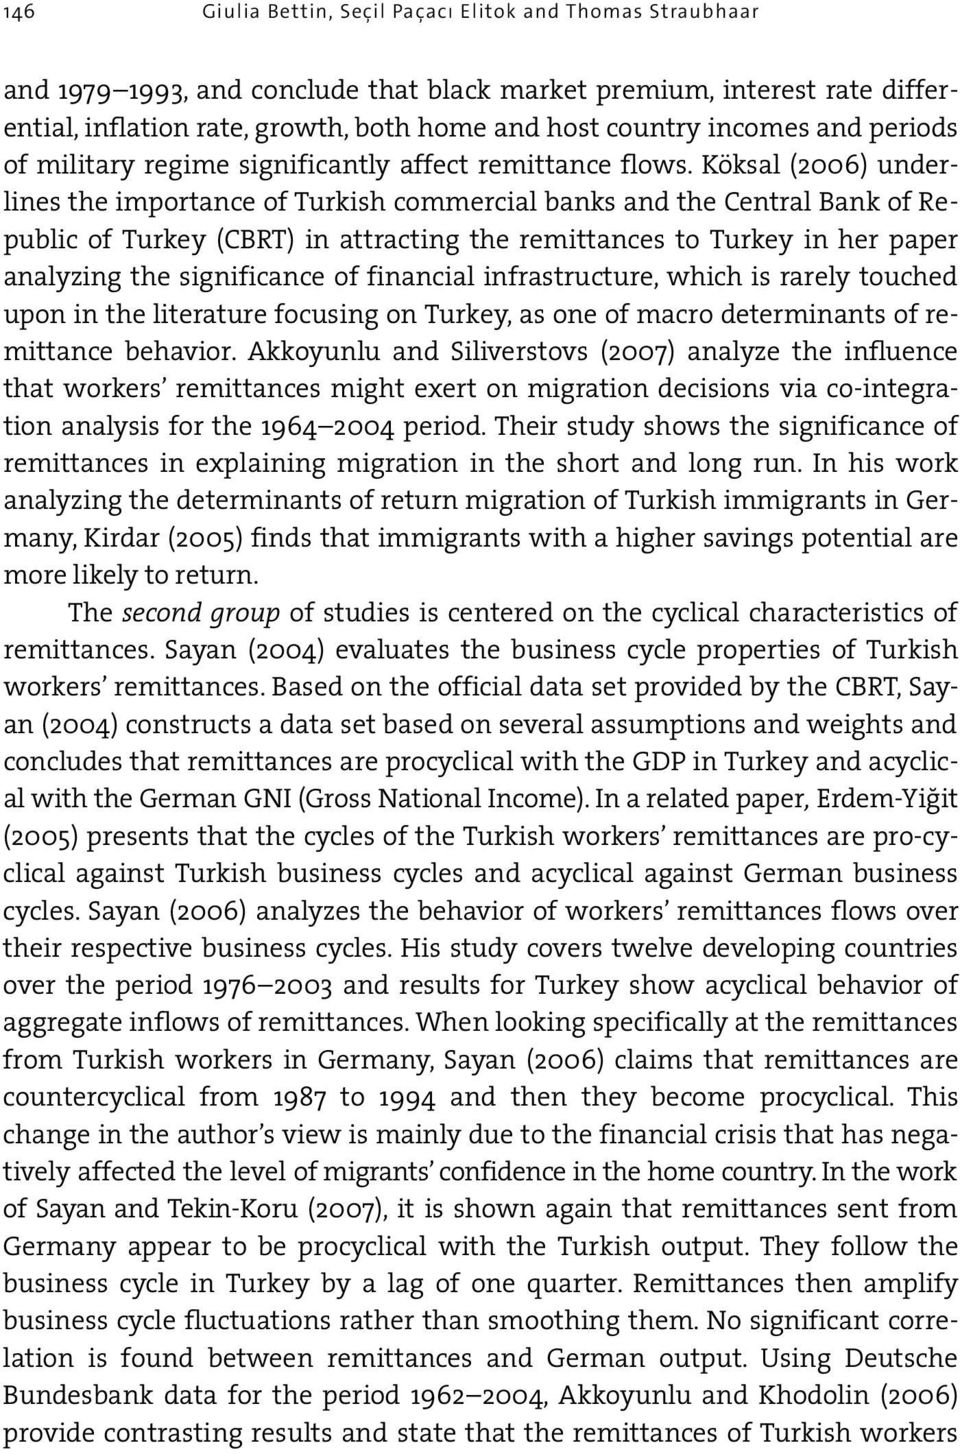 Köksal (2006) underlines the importance of Turkish commercial banks and the Central Bank of Republic of Turkey (CBRT) in attracting the remittances to Turkey in her paper analyzing the significance